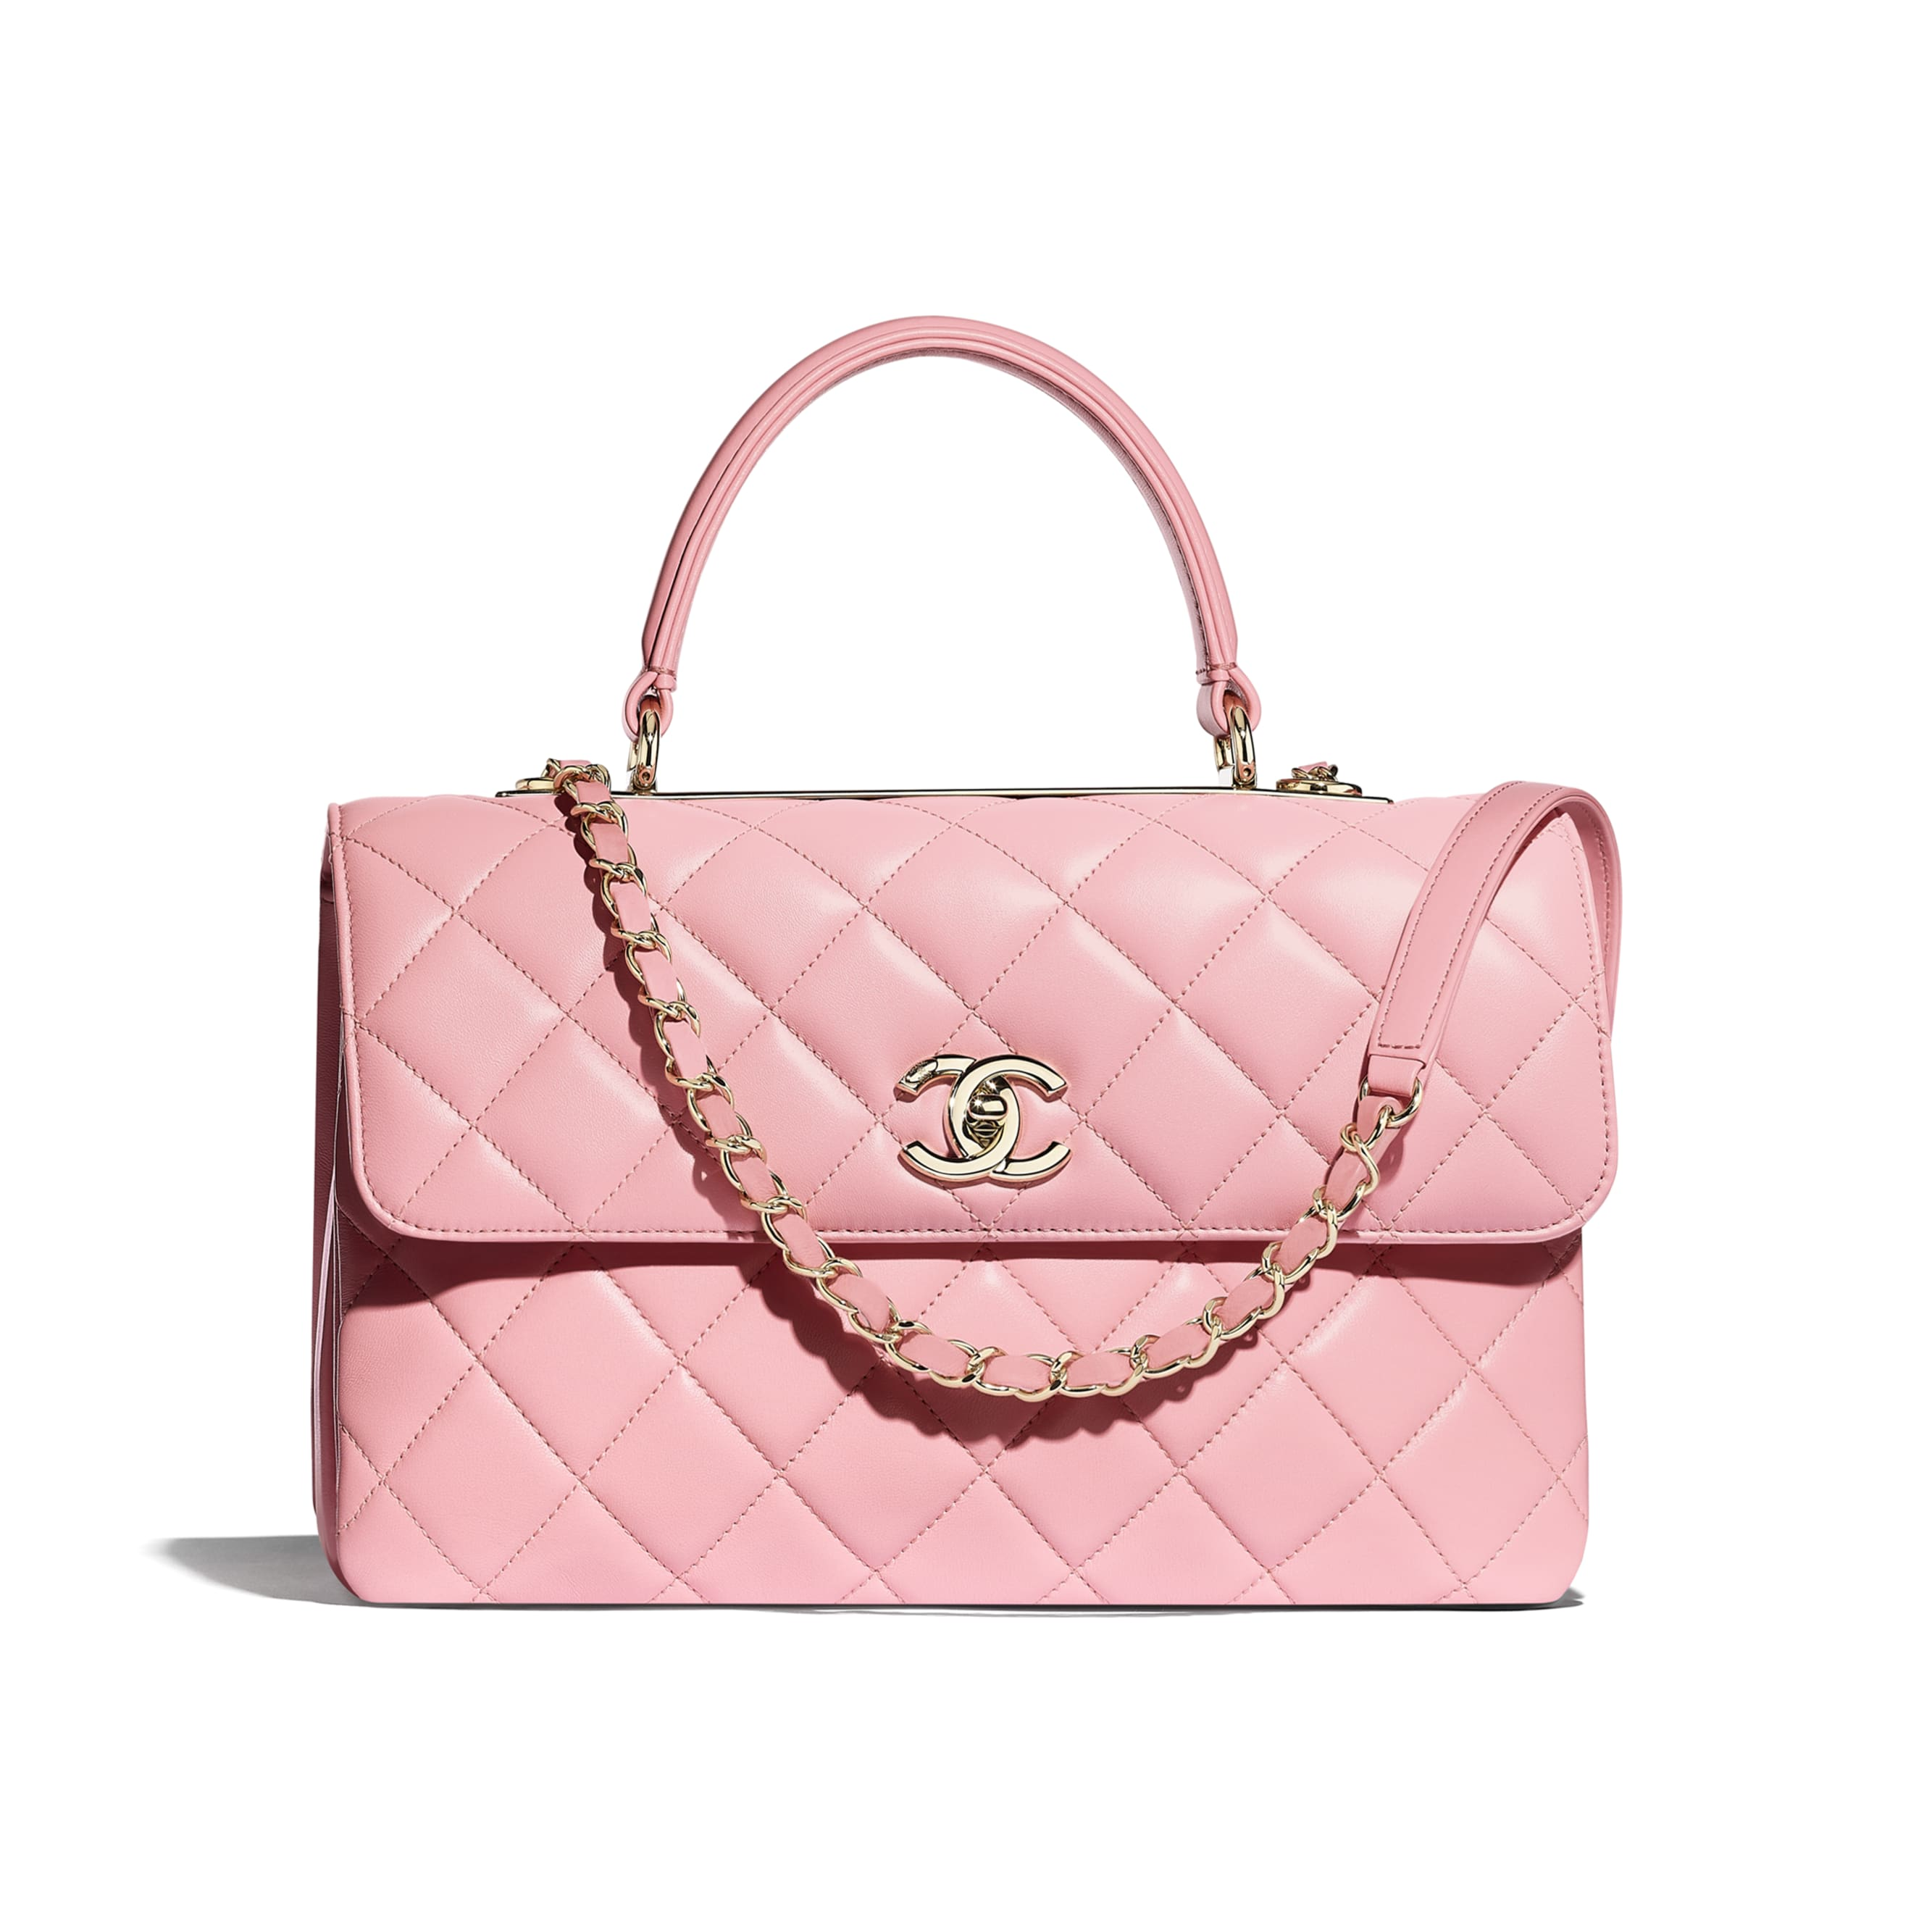 Flap Bag with Top Handle - Pink - Lambskin & Gold-Tone Metal - Default view - see standard sized version